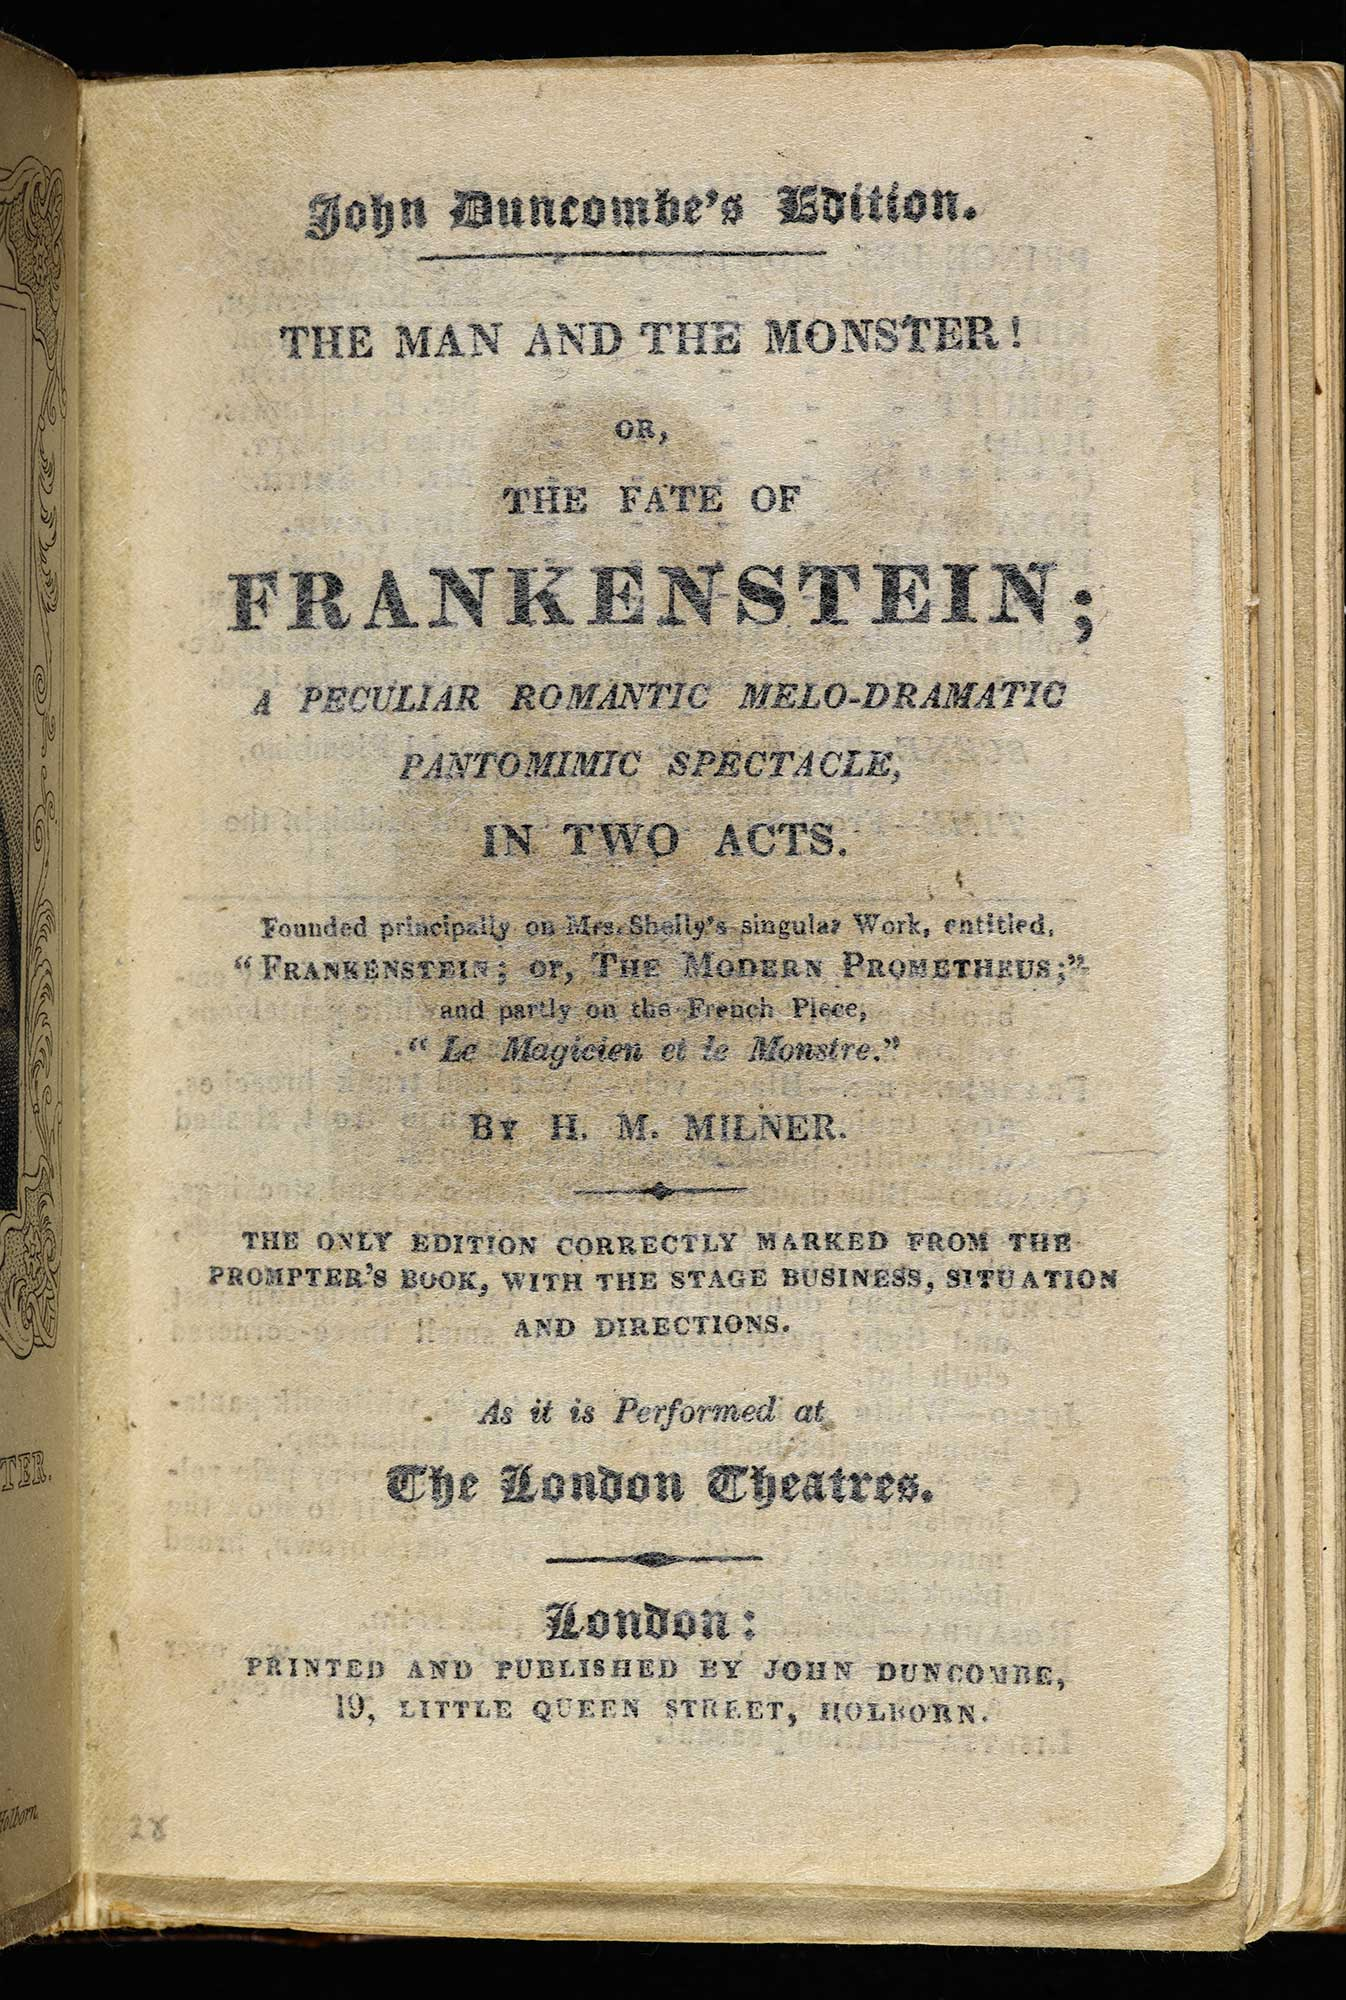 The Man and the Monster! Or, the Fate of Frankenstein [page: title page]